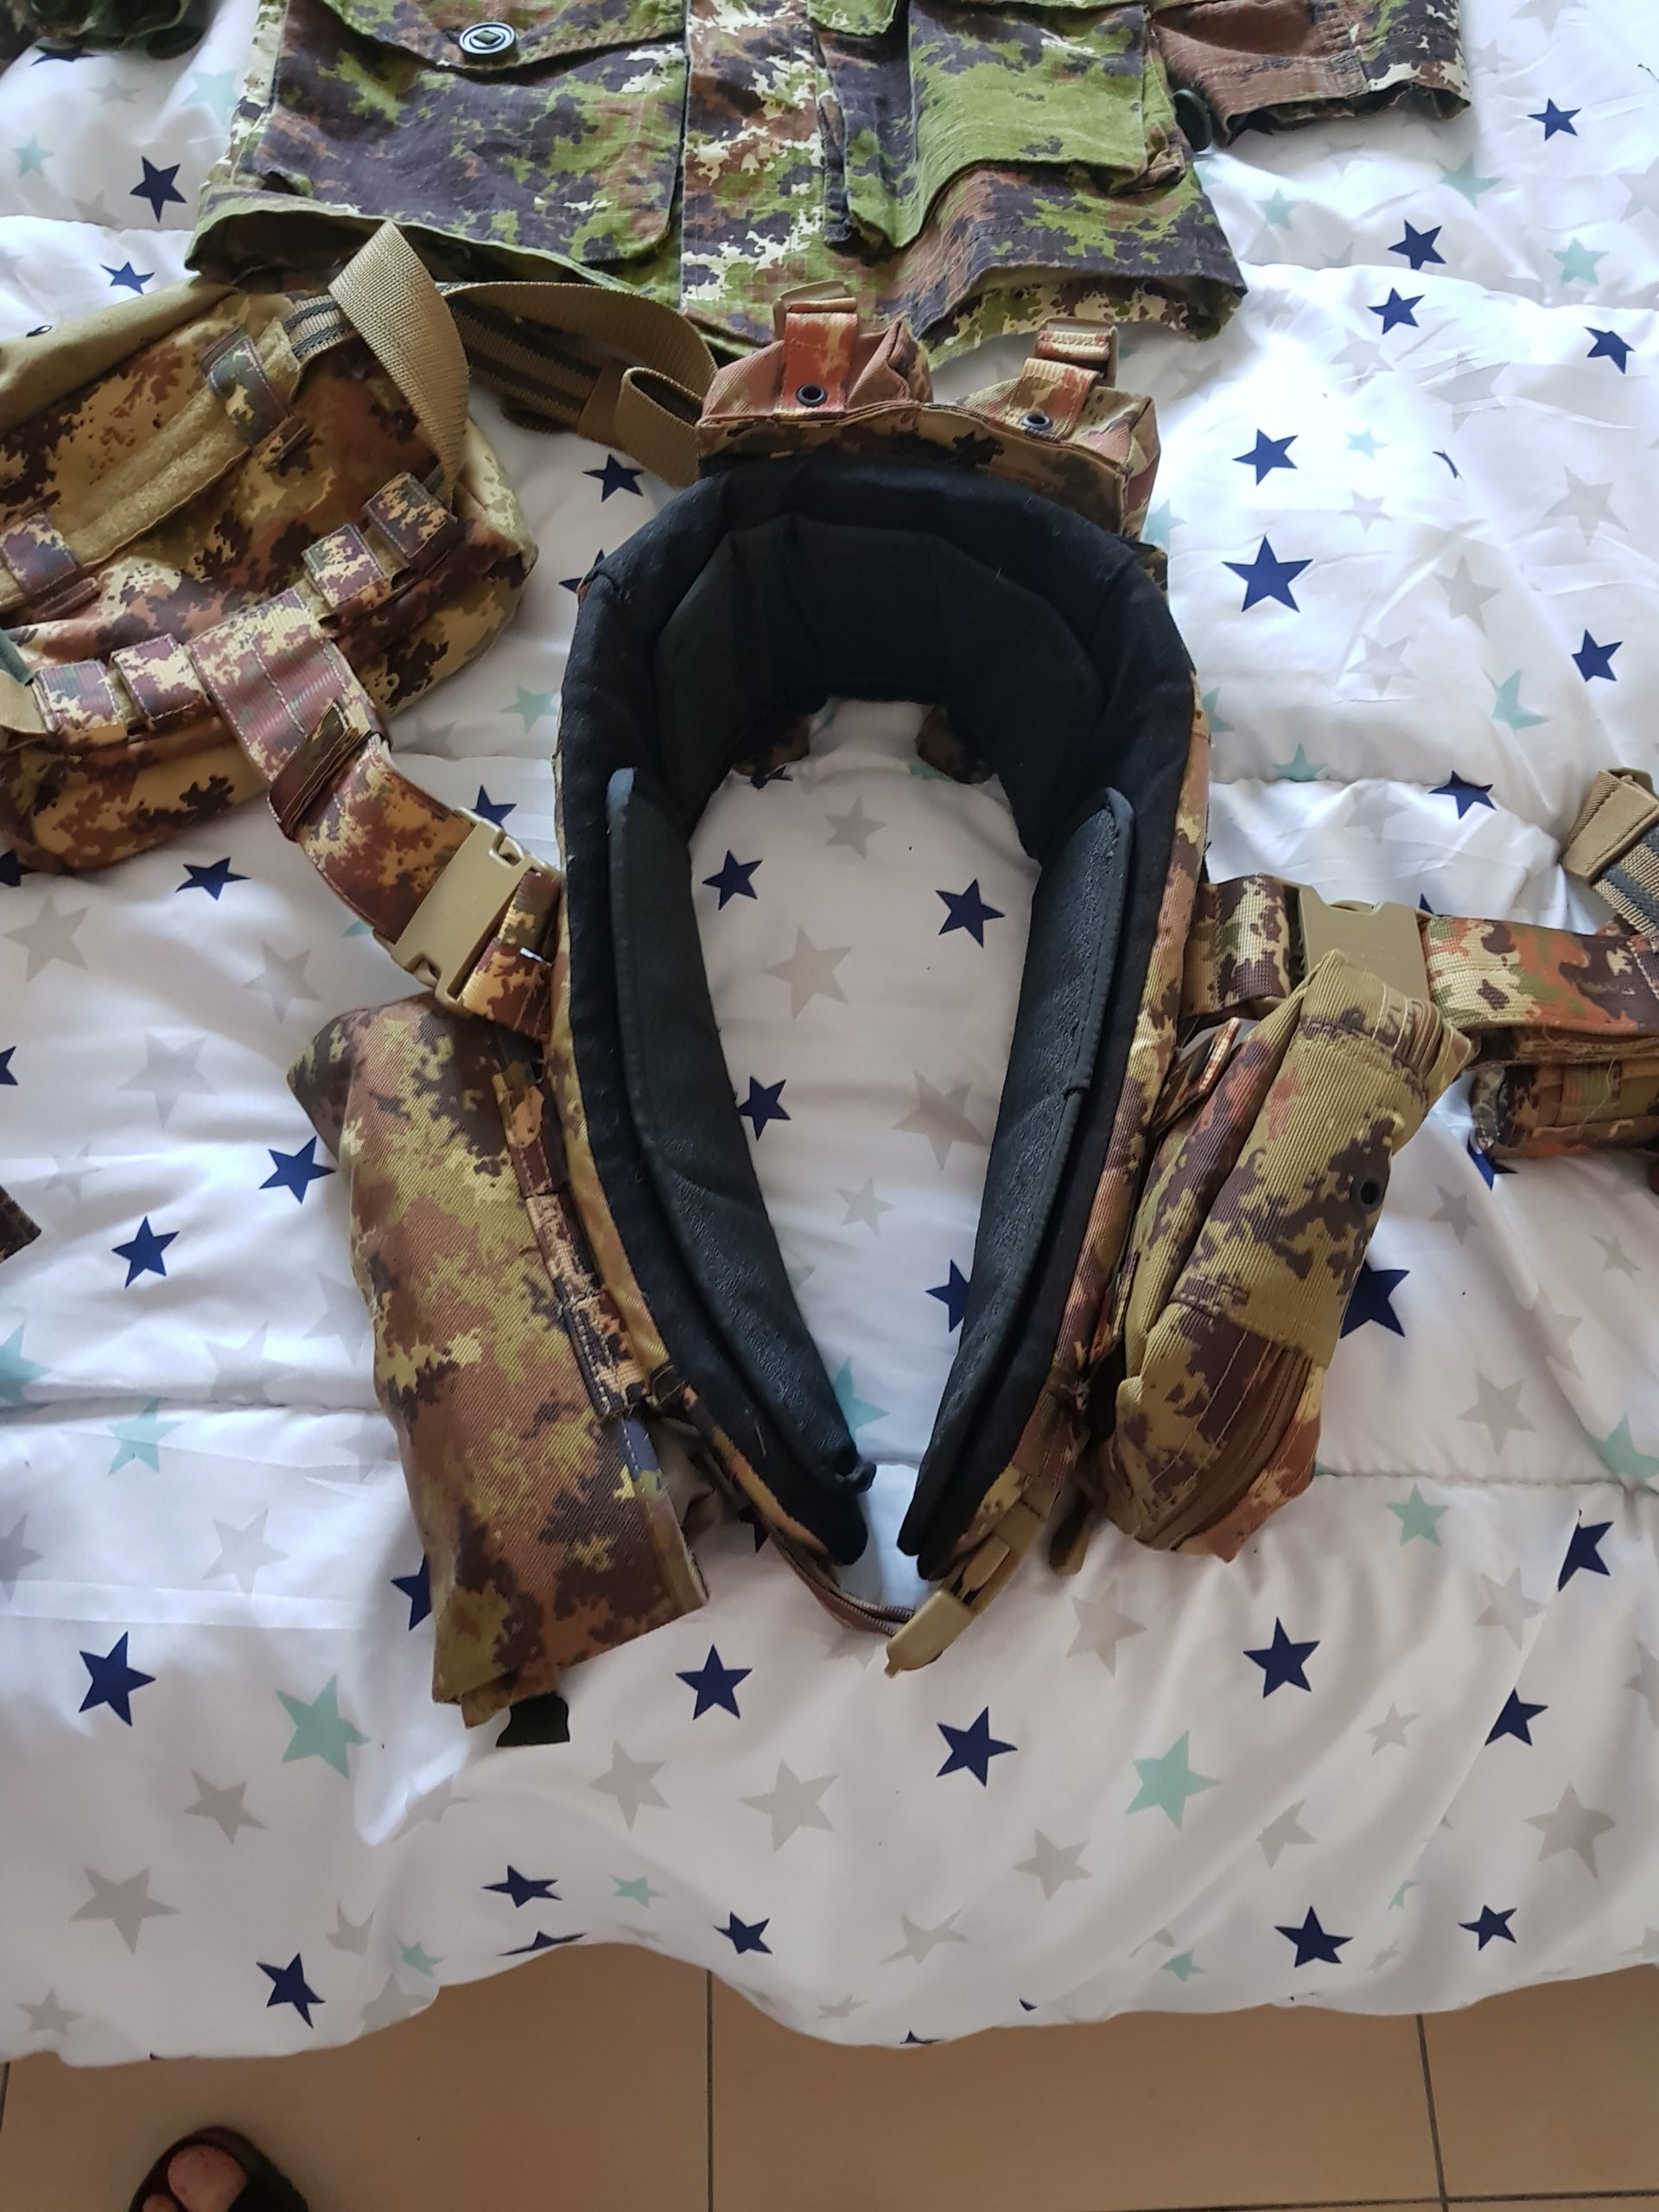 Articles airsoft